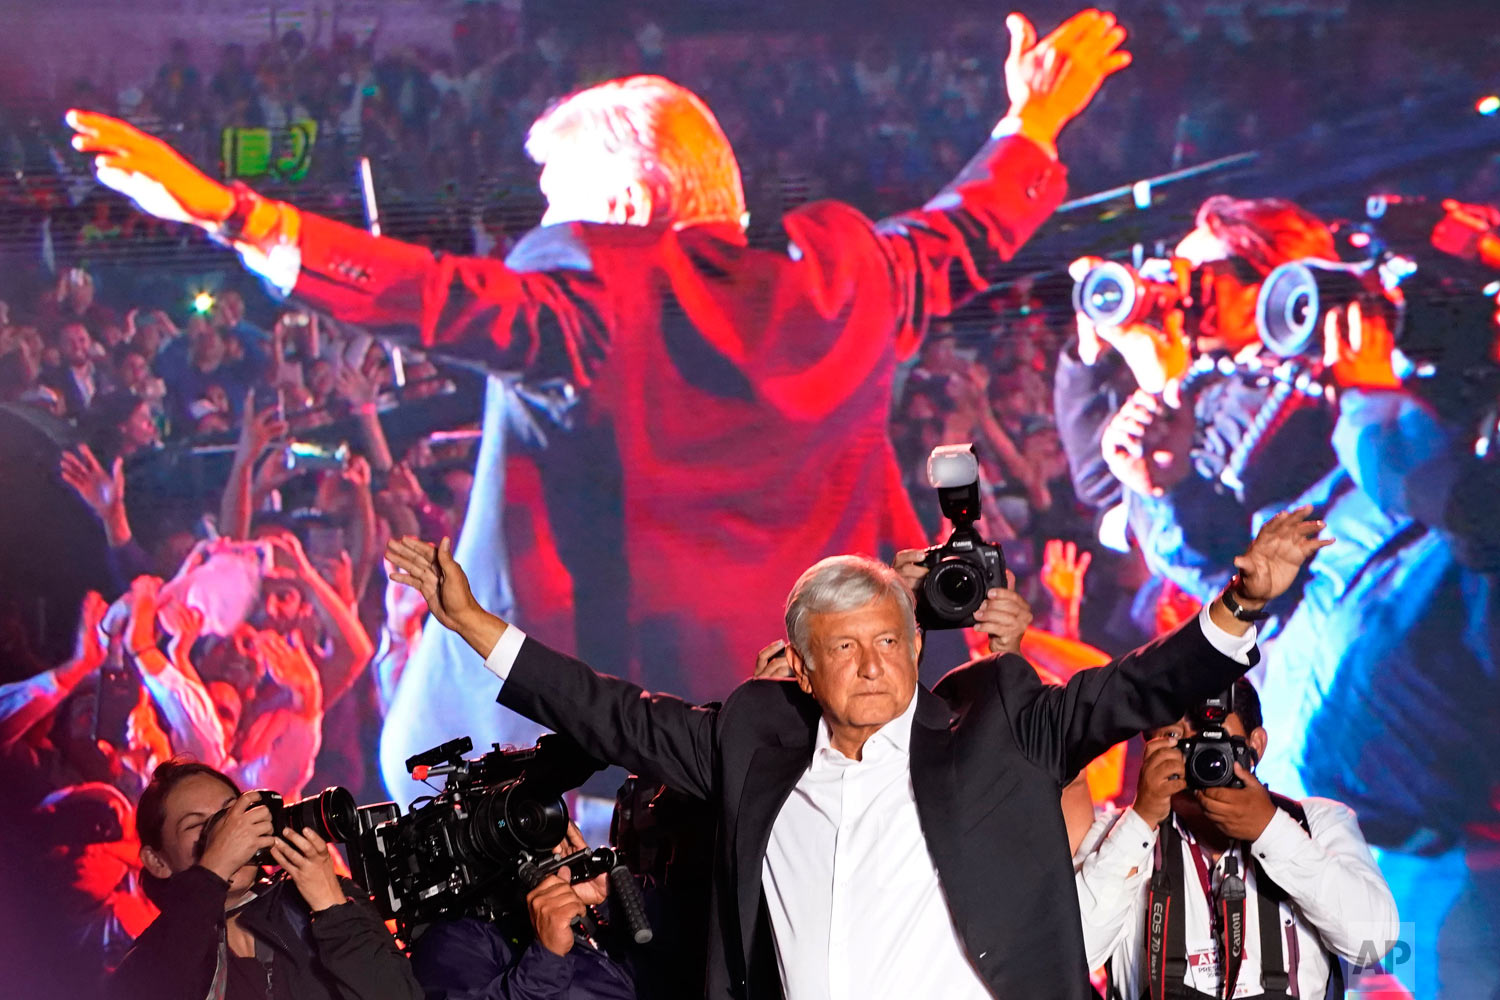 In this June 27, 2018 photo, presidential candidate Andres Manuel Lopez Obrador waves to supporters at his closing campaign rally at Azteca stadium in Mexico City. Lopez Obrador became Mexico's first leftist president in over 70 years, marking a turning point in one of the world's most radical experiments in opening markets and privatization. (AP Photo/Ramon Espinosa)